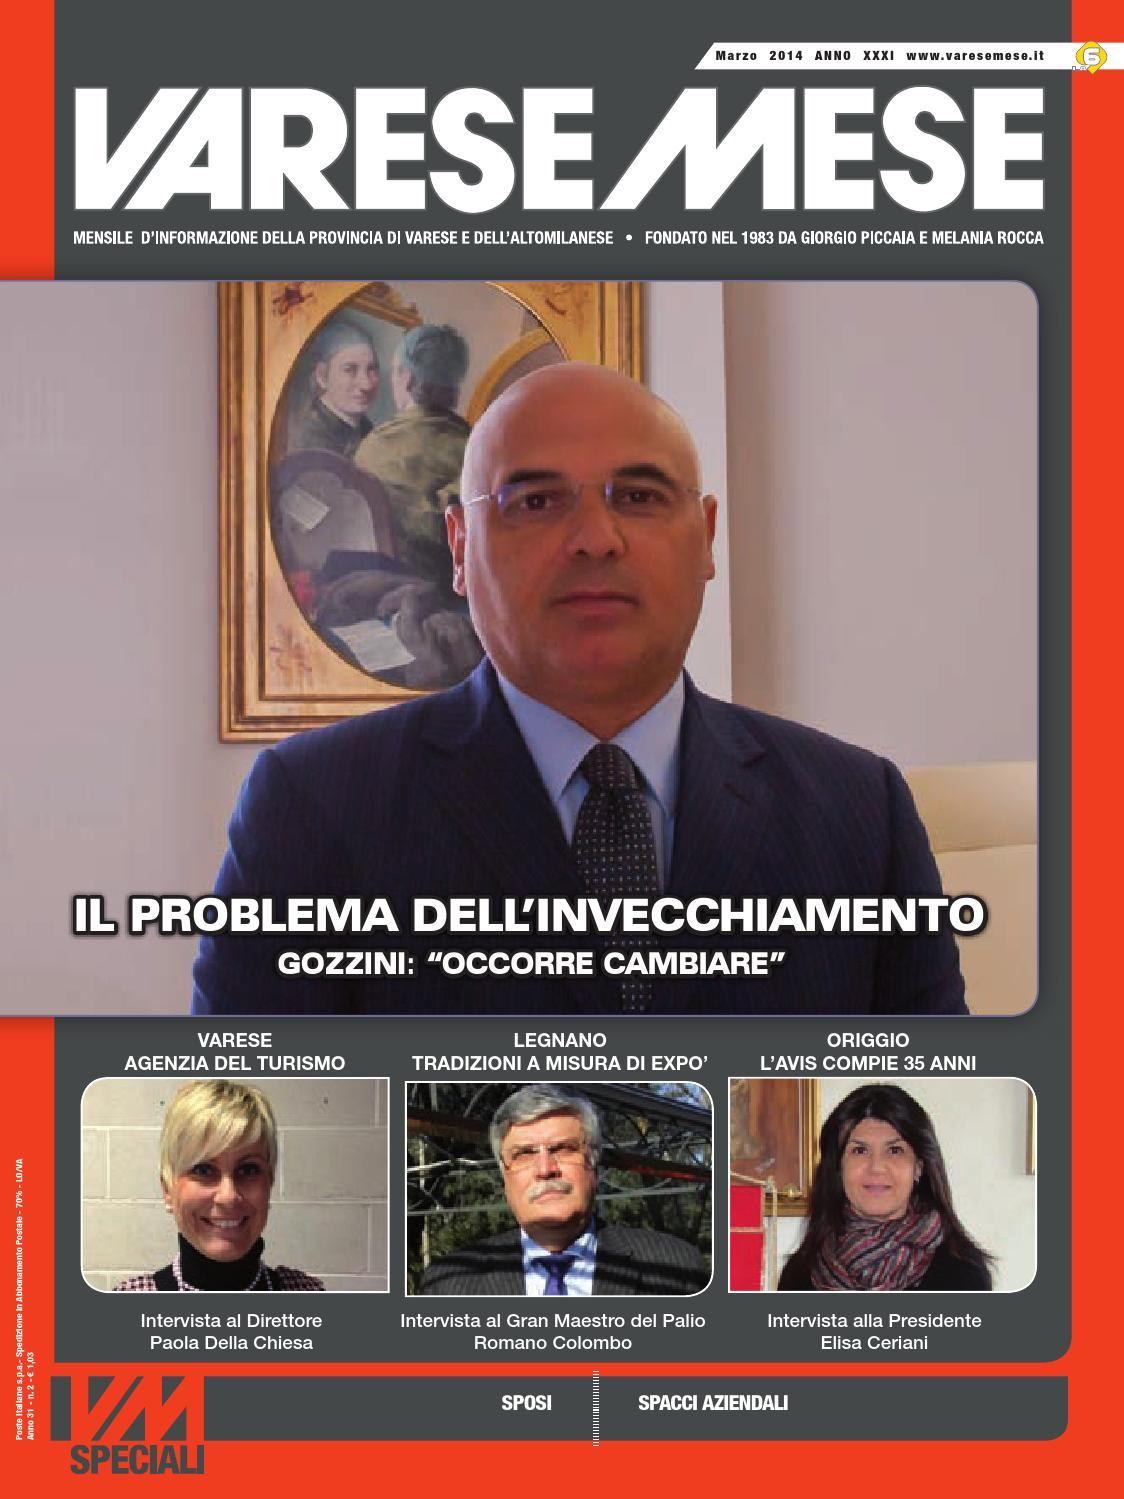 VARESE MESE MARZO 2014 by Varese Mese - issuu 84216d5a2cf7